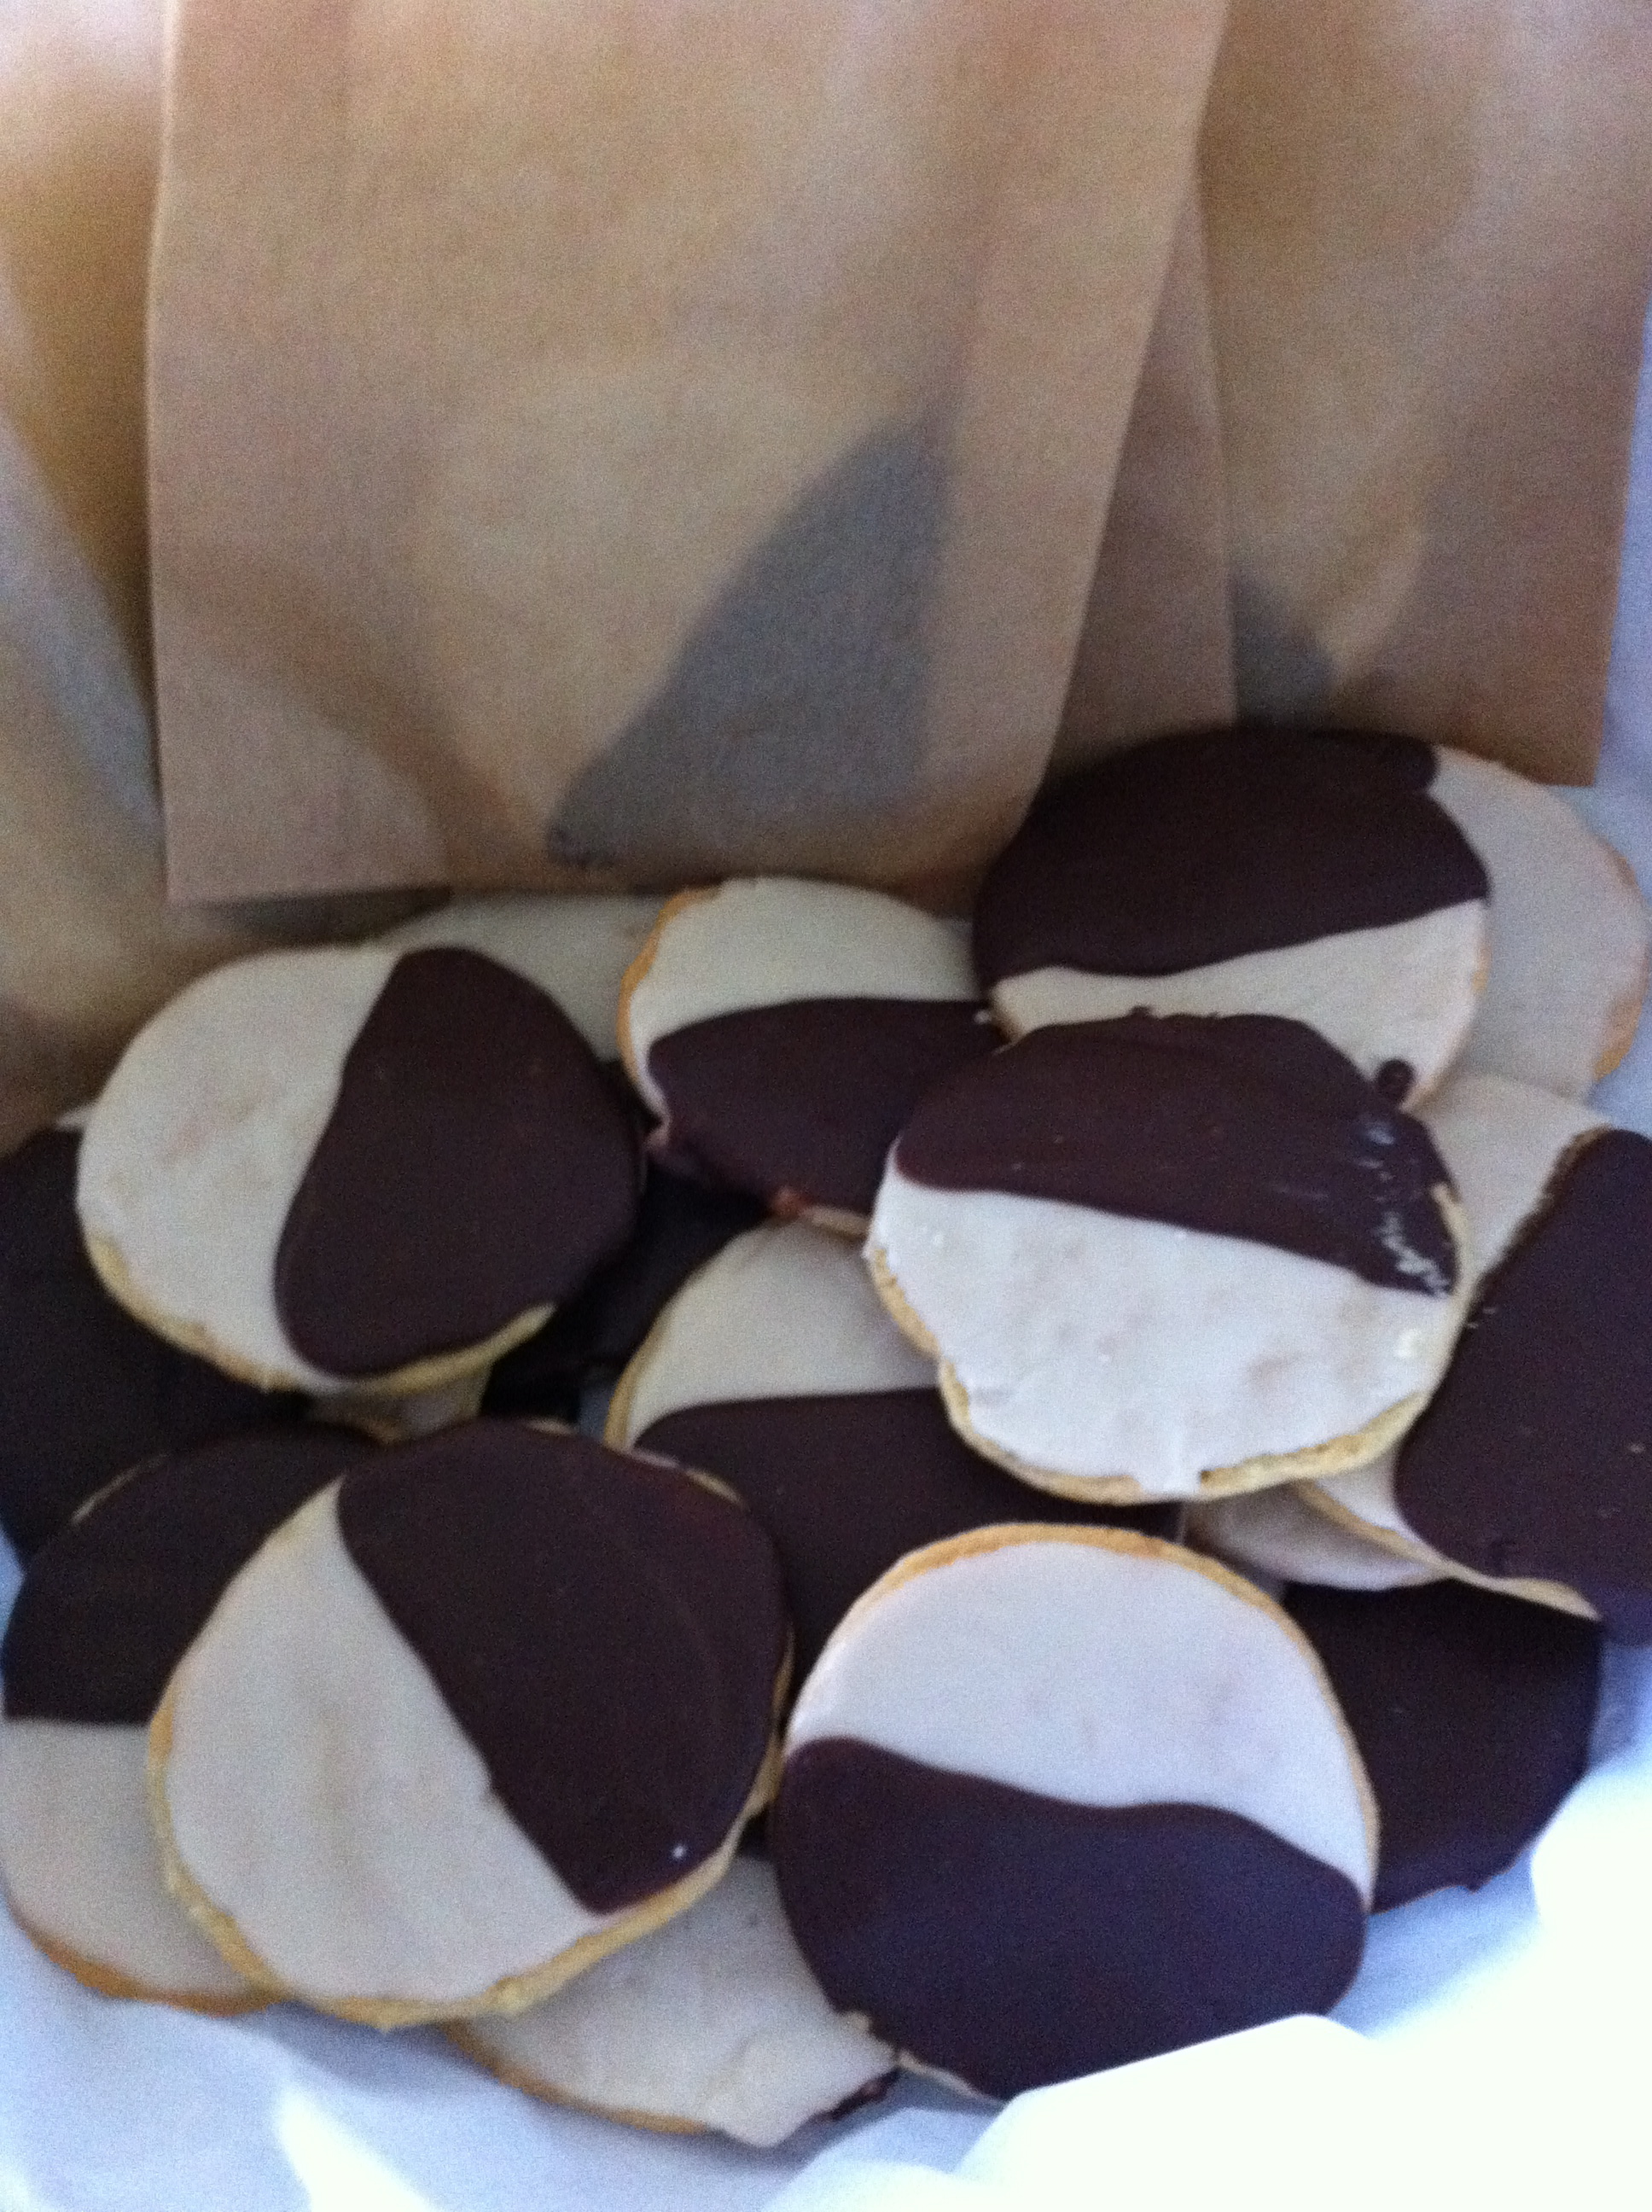 These vegan black and white cookies were the perfect treat for Avi's birthday party.